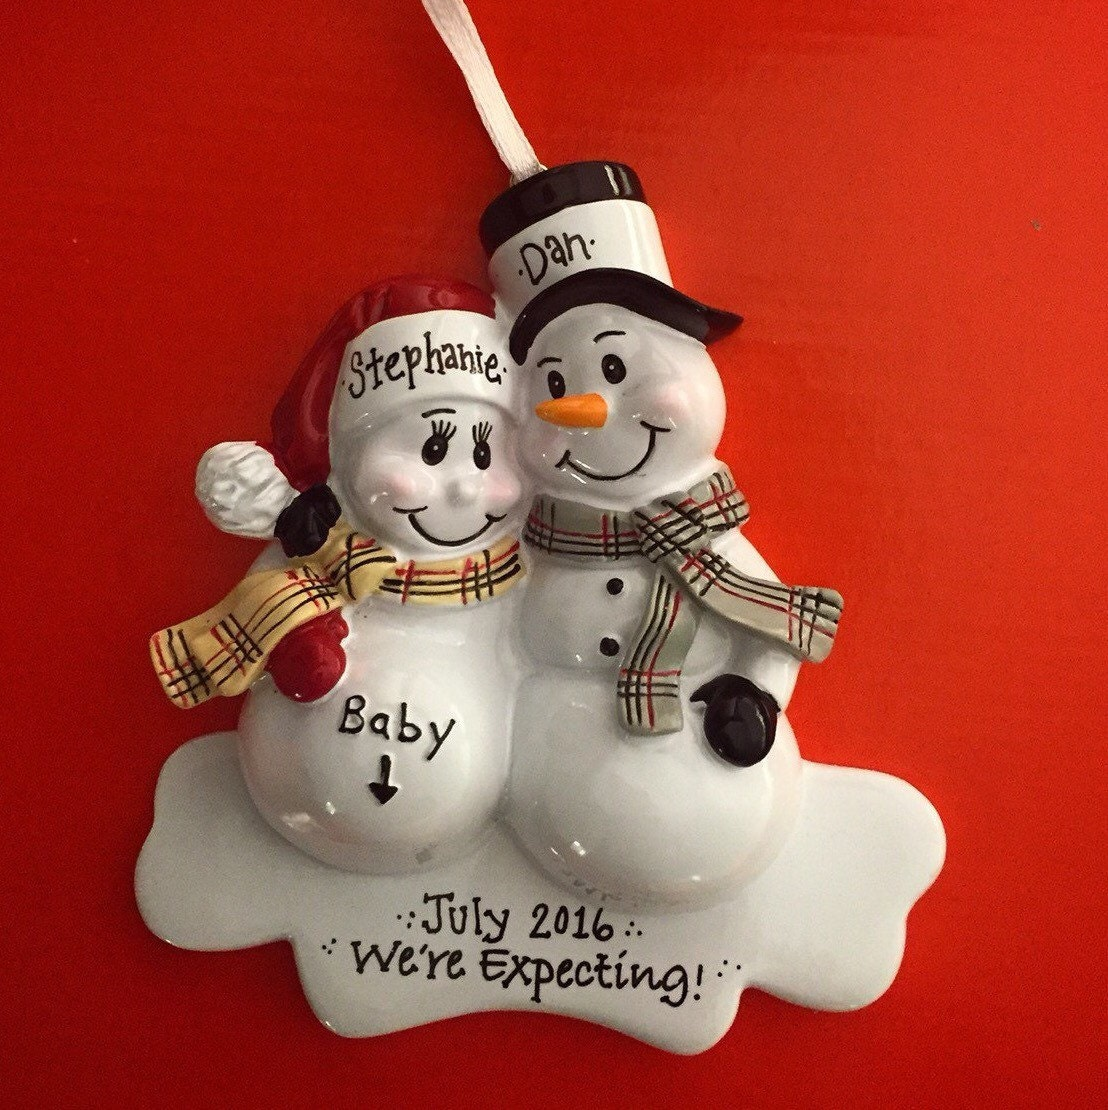 Christmas ornament expecting baby - Gallery Photo Gallery Photo Gallery Photo Gallery Photo